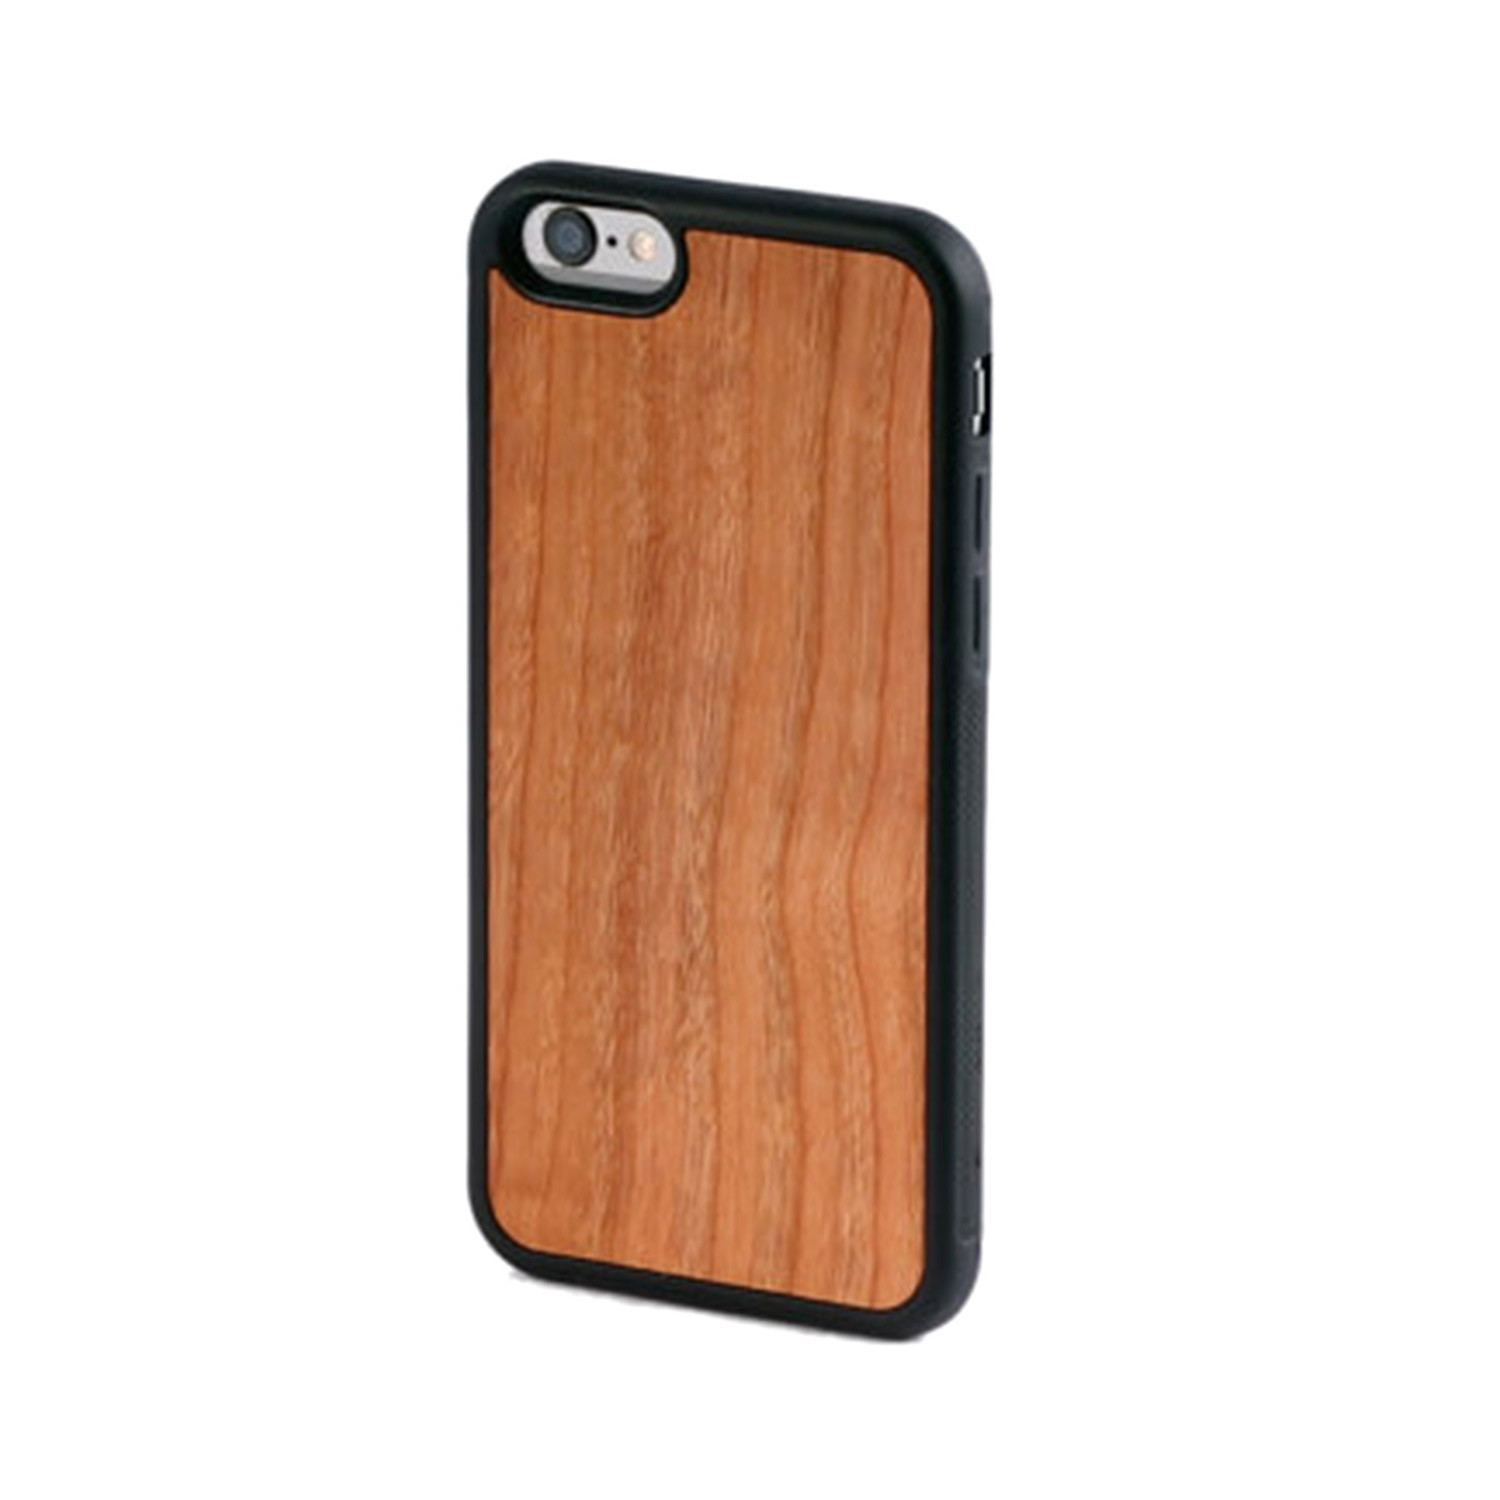 Iphone Case Cherry Wood Iphone 5 5s Touch Of Wood